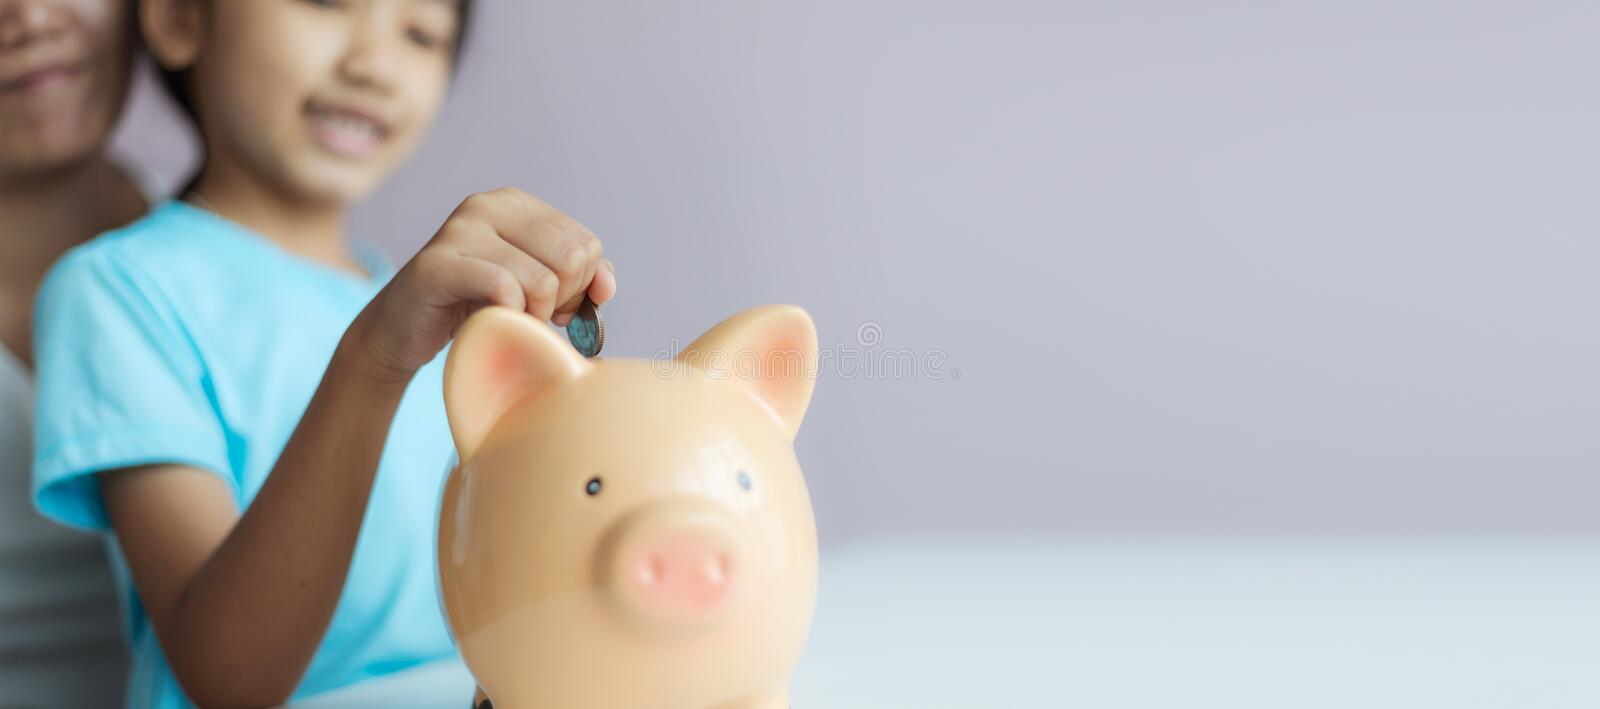 Mother and daughter putting coin into the piggy bank for money saving for the future concept select focus shallow depth of field. With copy space, family, girl royalty free stock photos